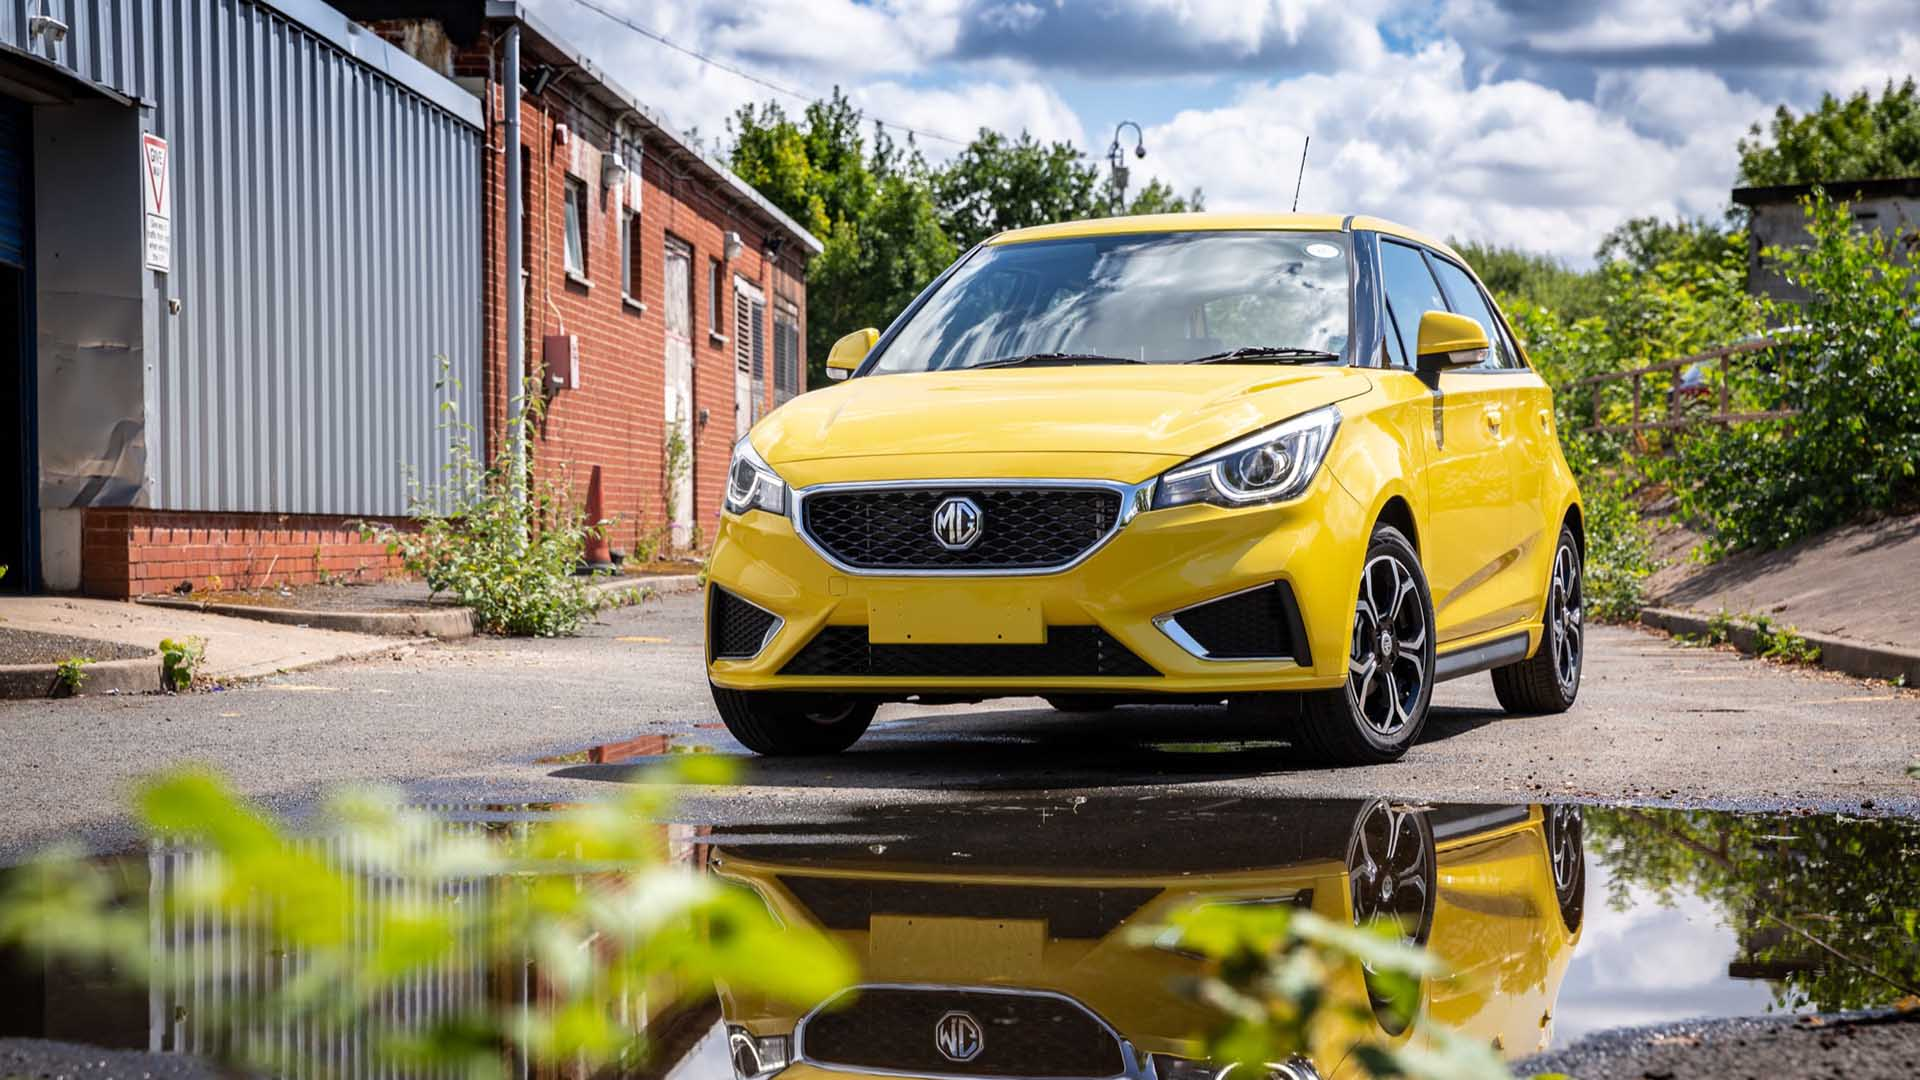 MG3 – from £12,195